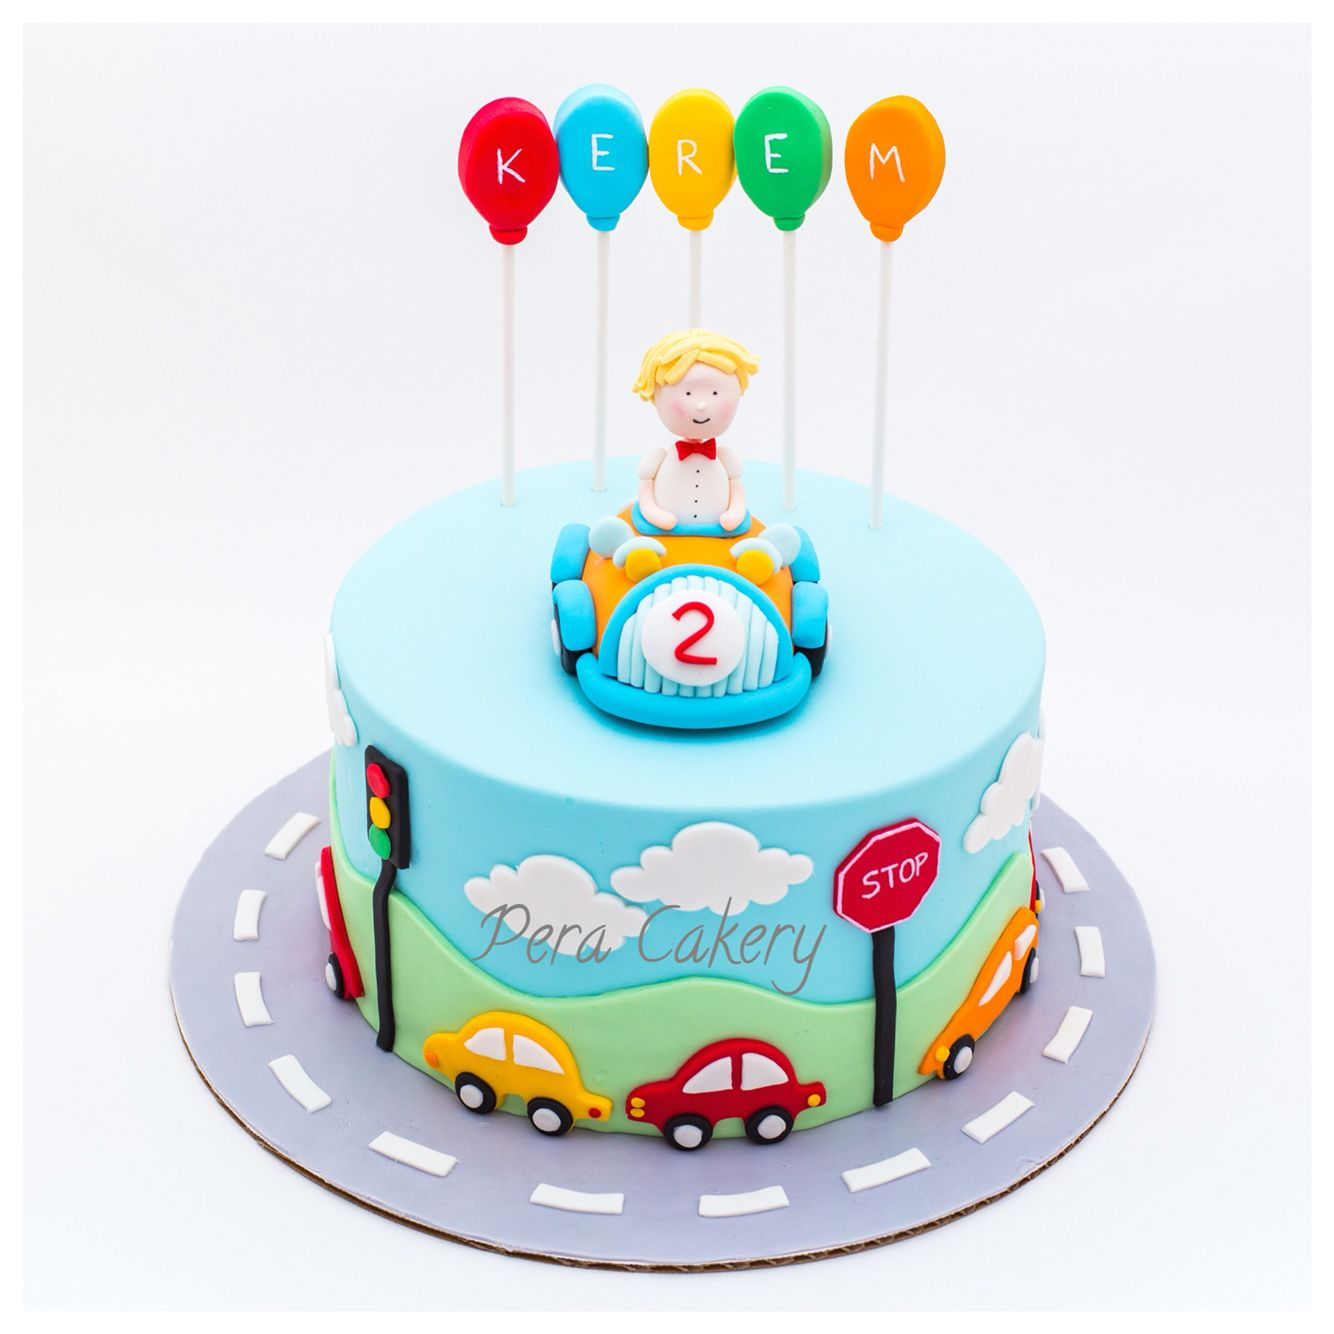 Birthday Cake Images For 3 Year Old Boy : Car cake for a 2 year old boy Pera Cakery Cakes ...